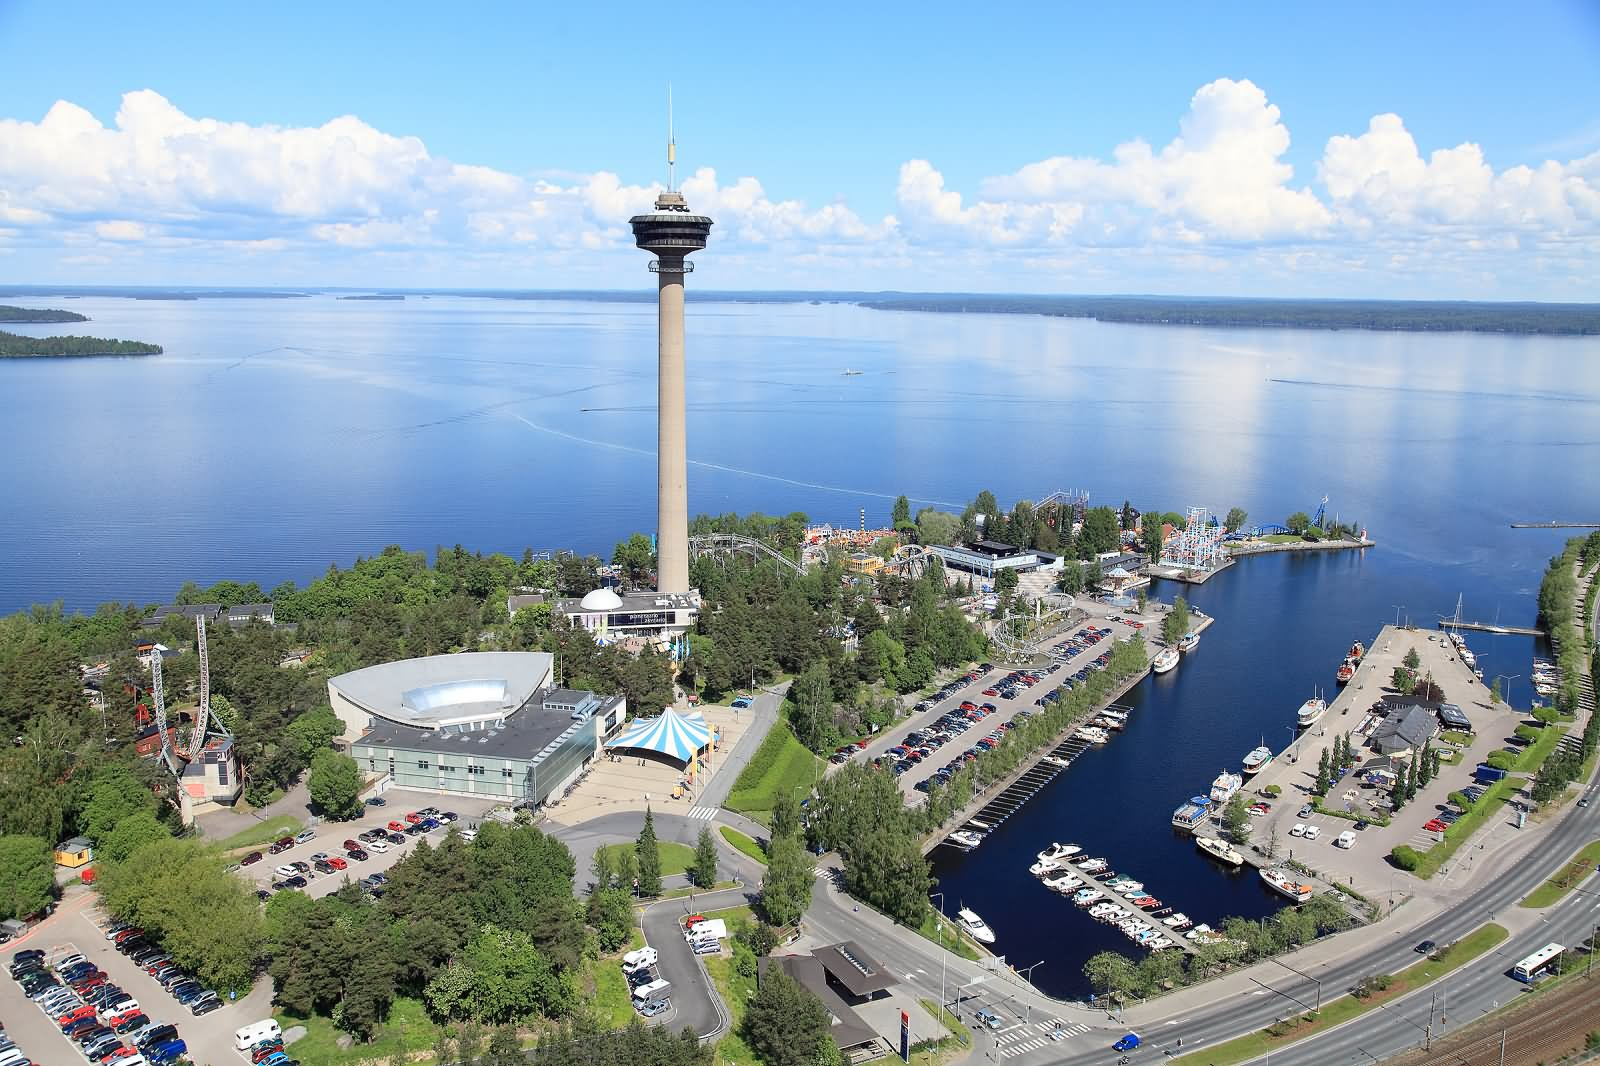 30 Most Beautiful Pictures Of The Nasinneula Tower In Tampere City, Finland